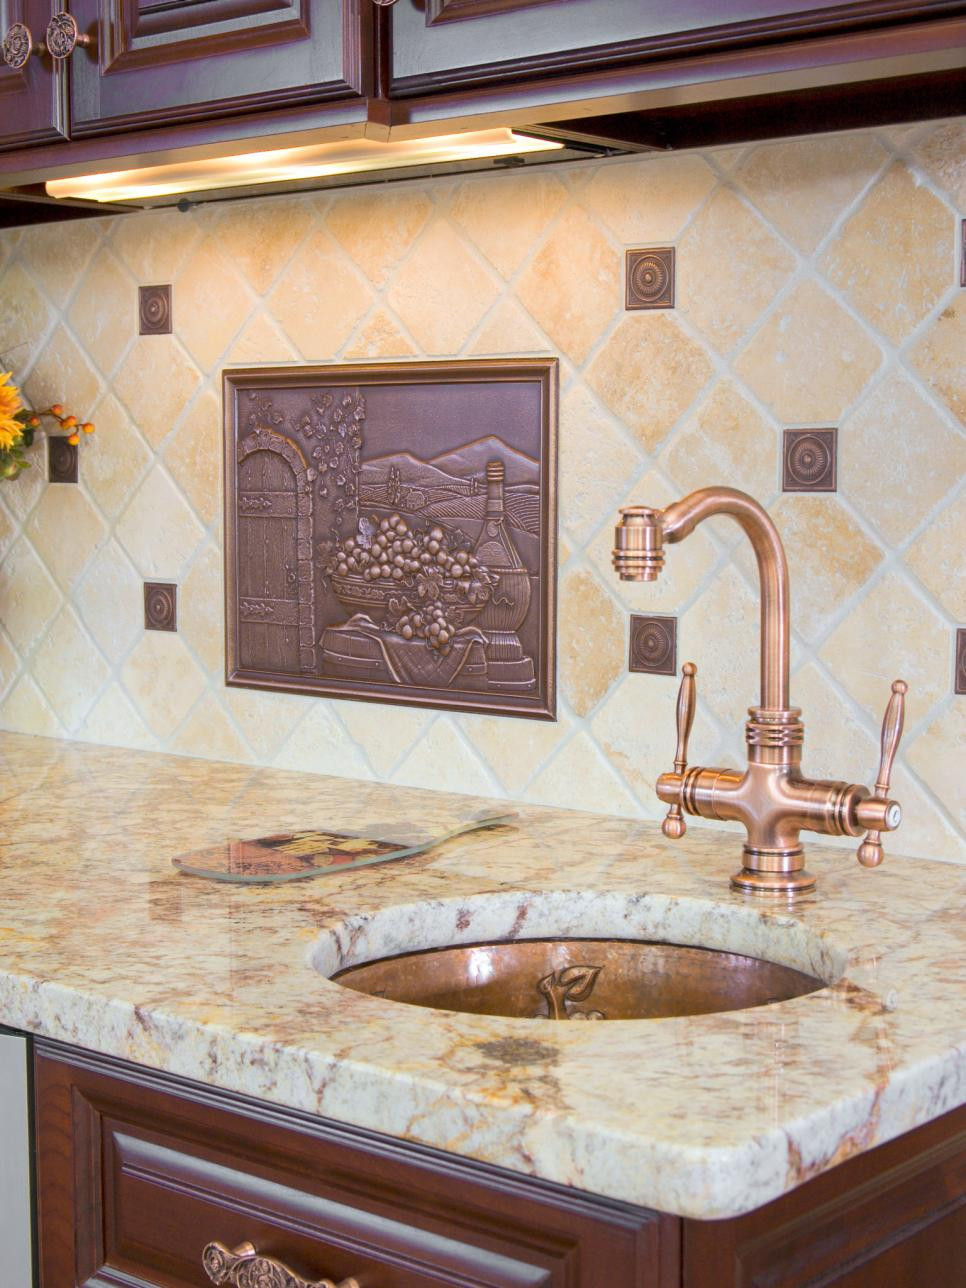 Kitchen Backsplash Design 15 Creative Kitchen Backsplash Ideas